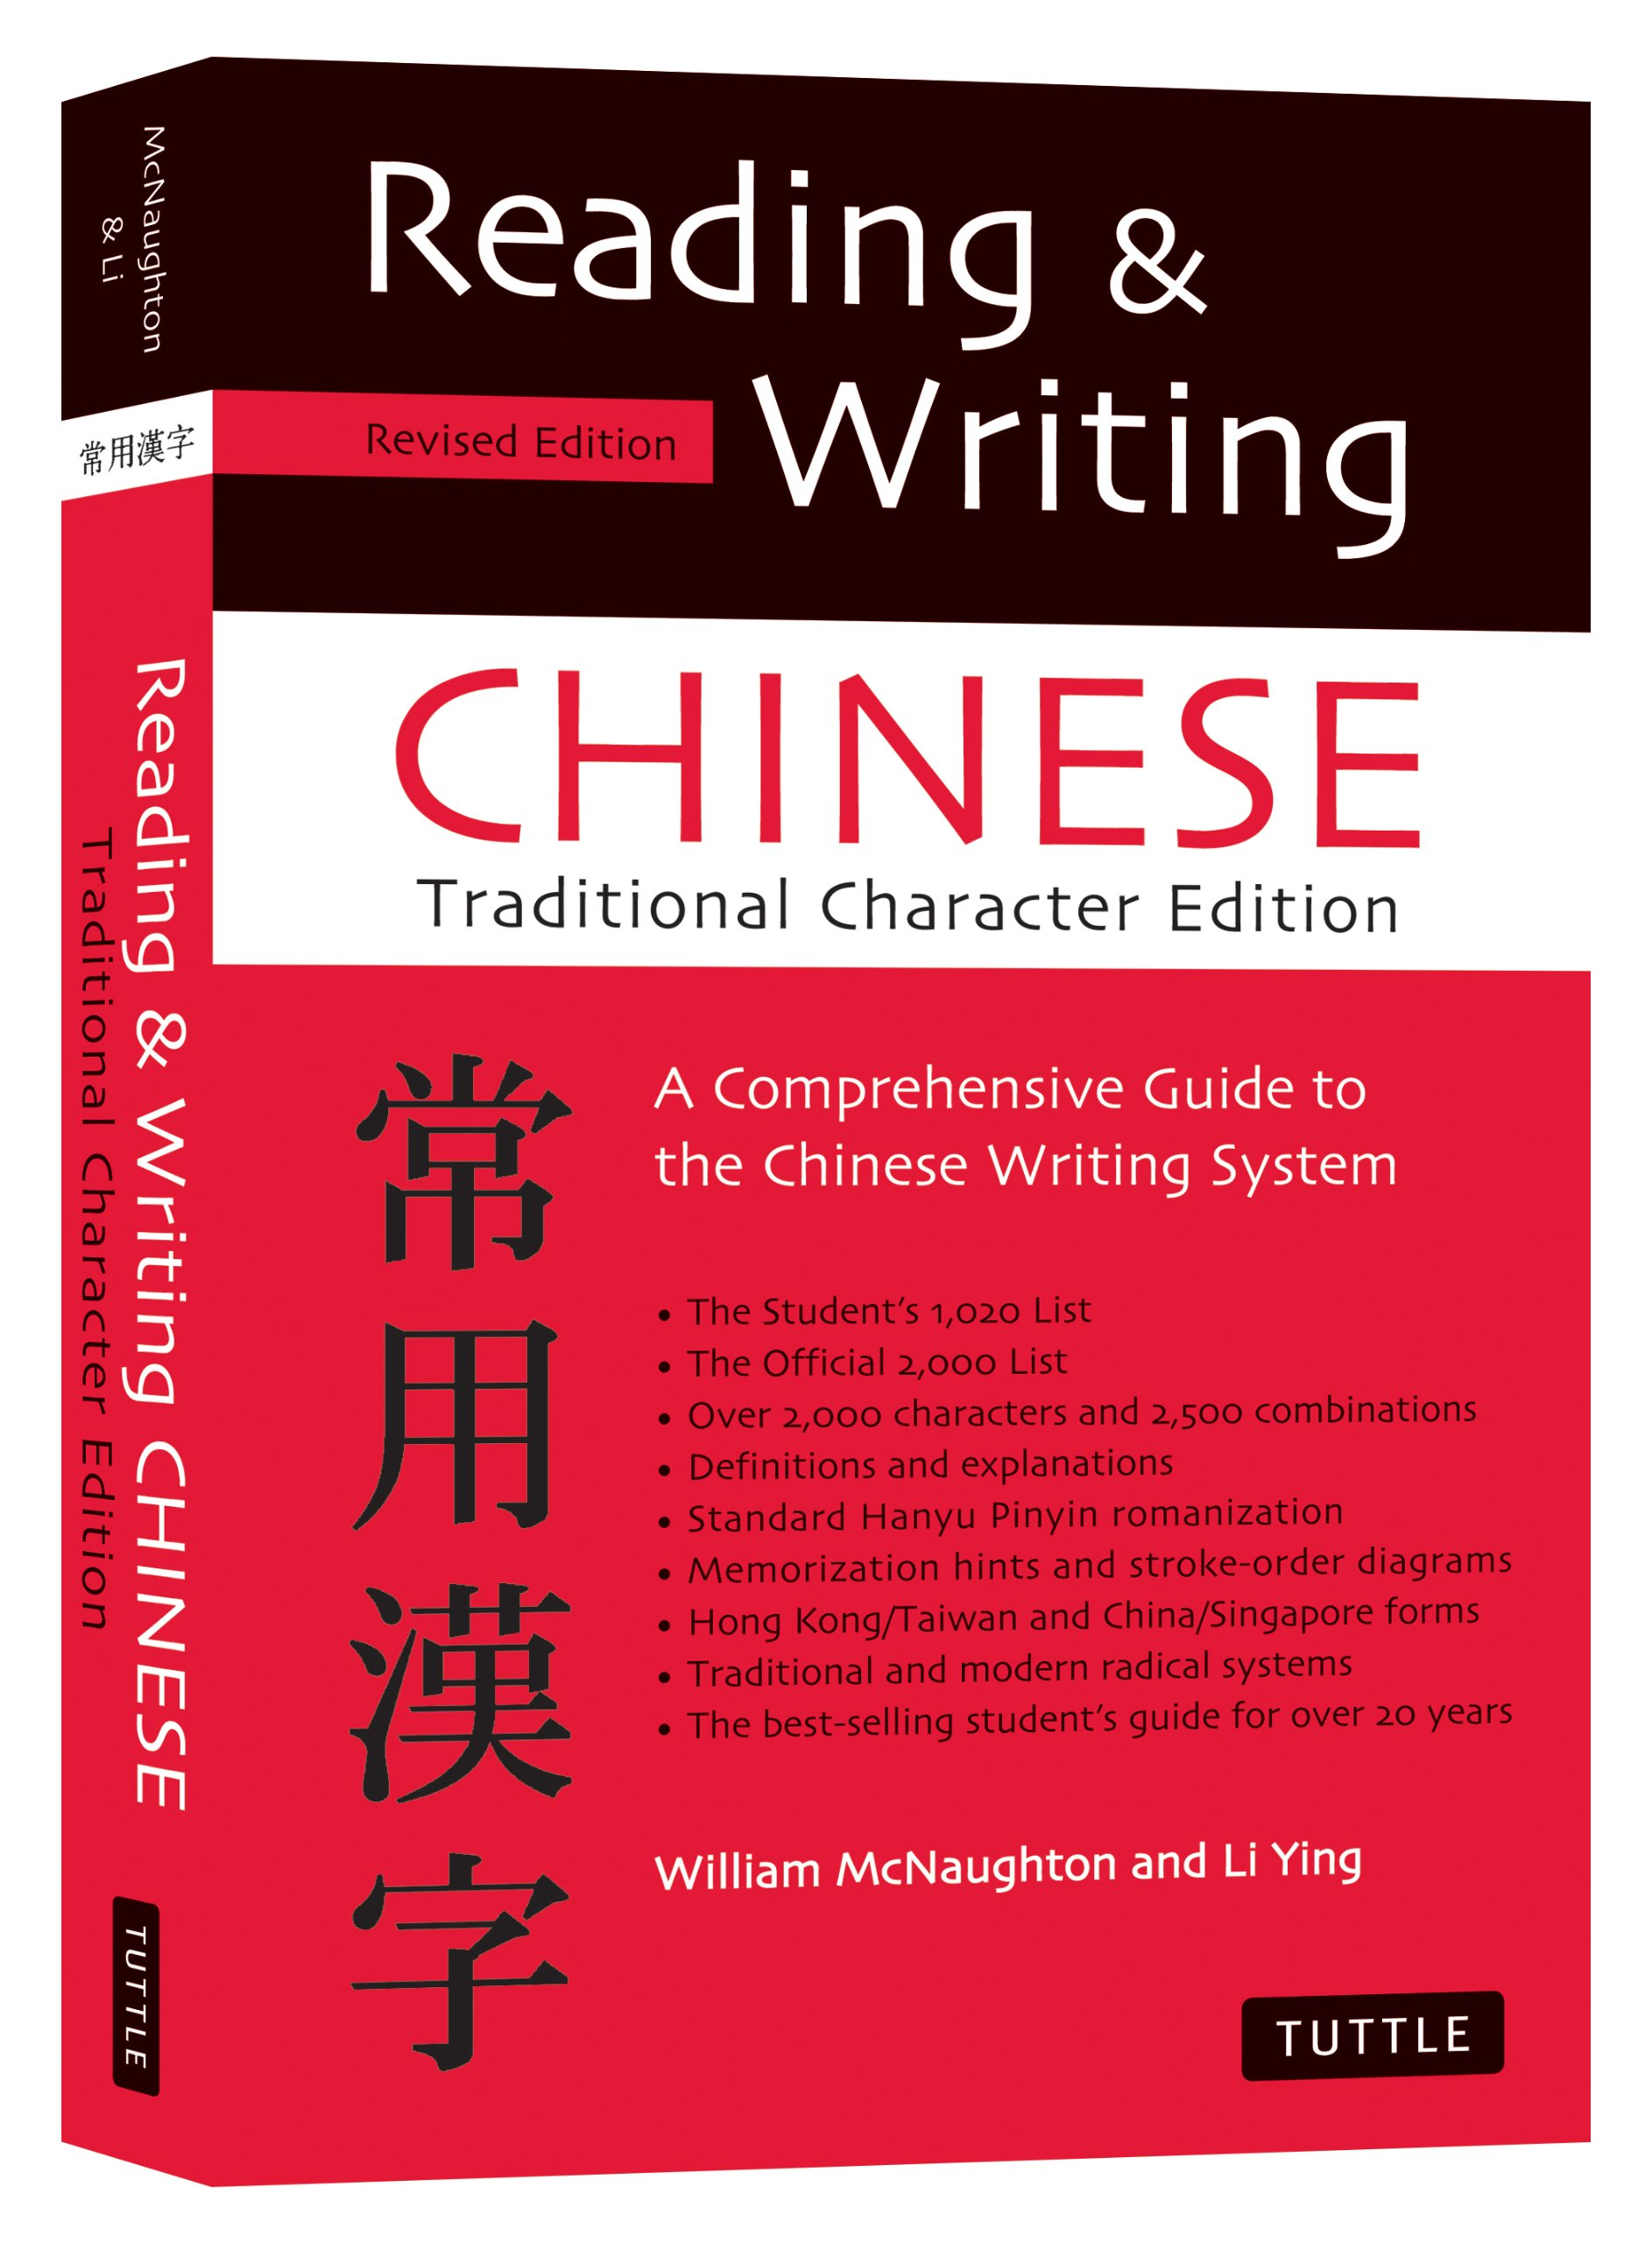 Reading and writing chinese guide to the chinese writing system reading and writing chinese guide to the chinese writing system amazon william mcnaughton 9780804832069 books biocorpaavc